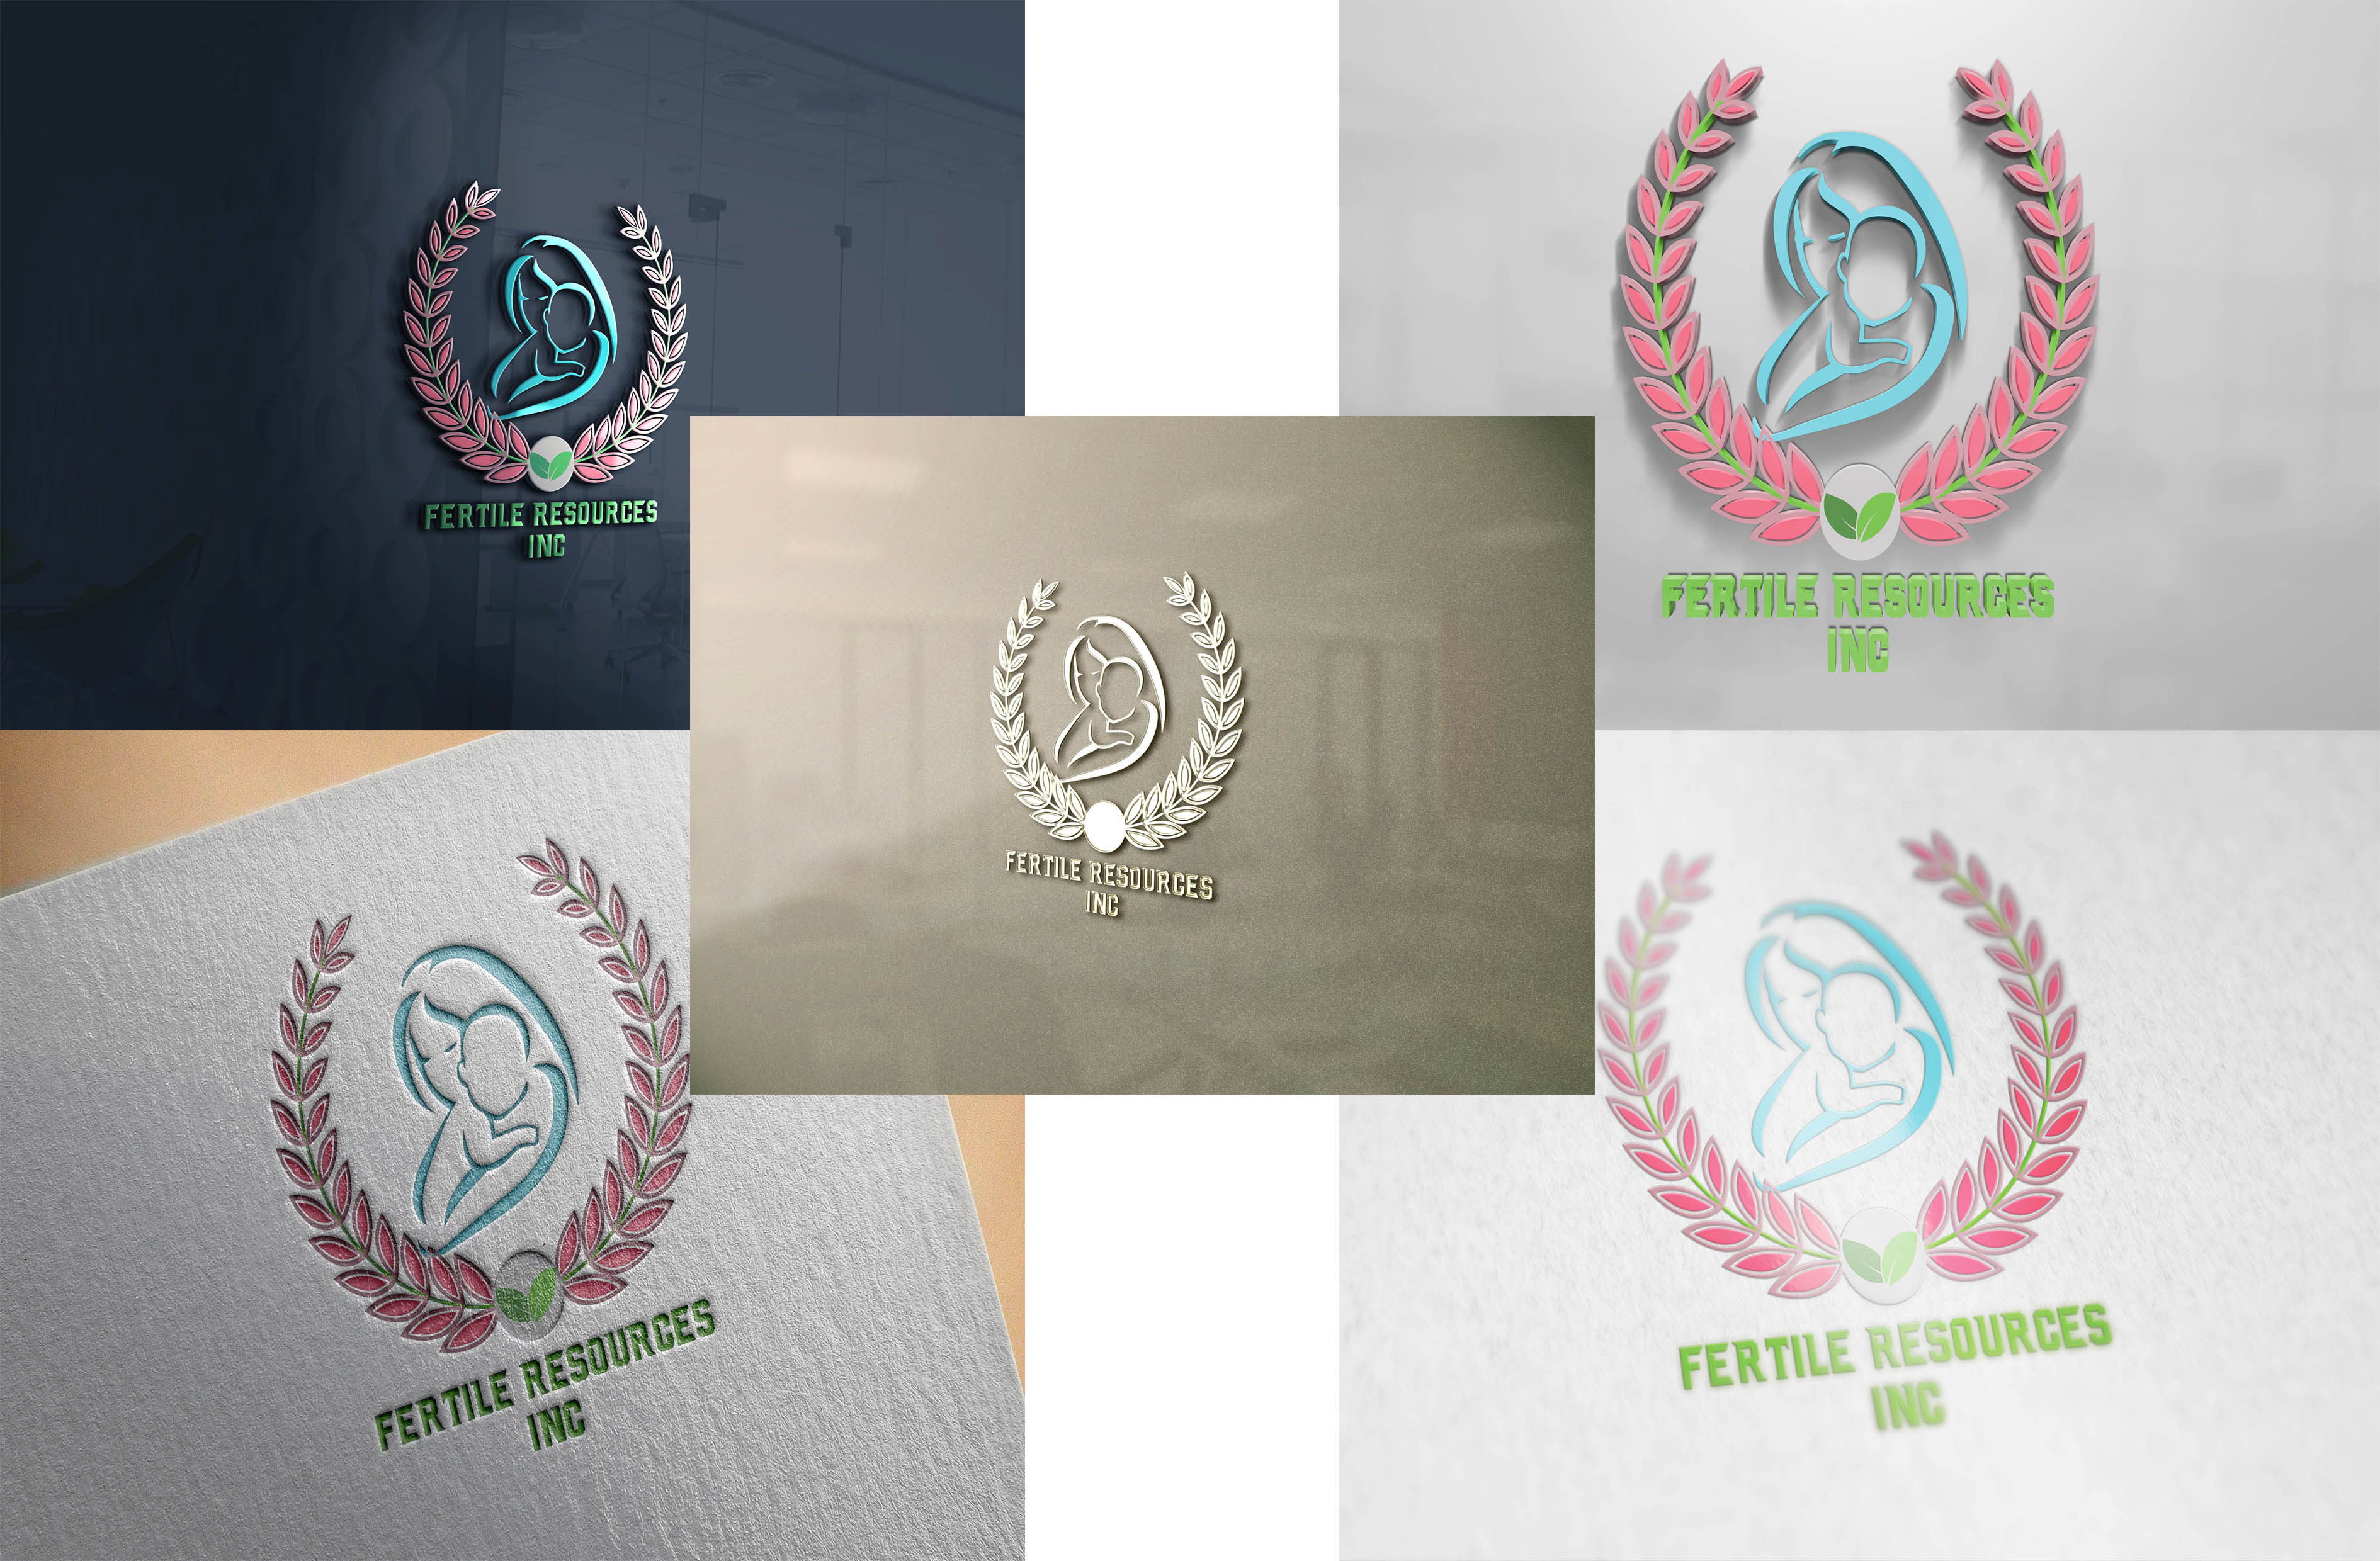 Logo Design by Umair ahmed Iqbal - Entry No. 95 in the Logo Design Contest Fertile Resources, Inc. Logo Design.